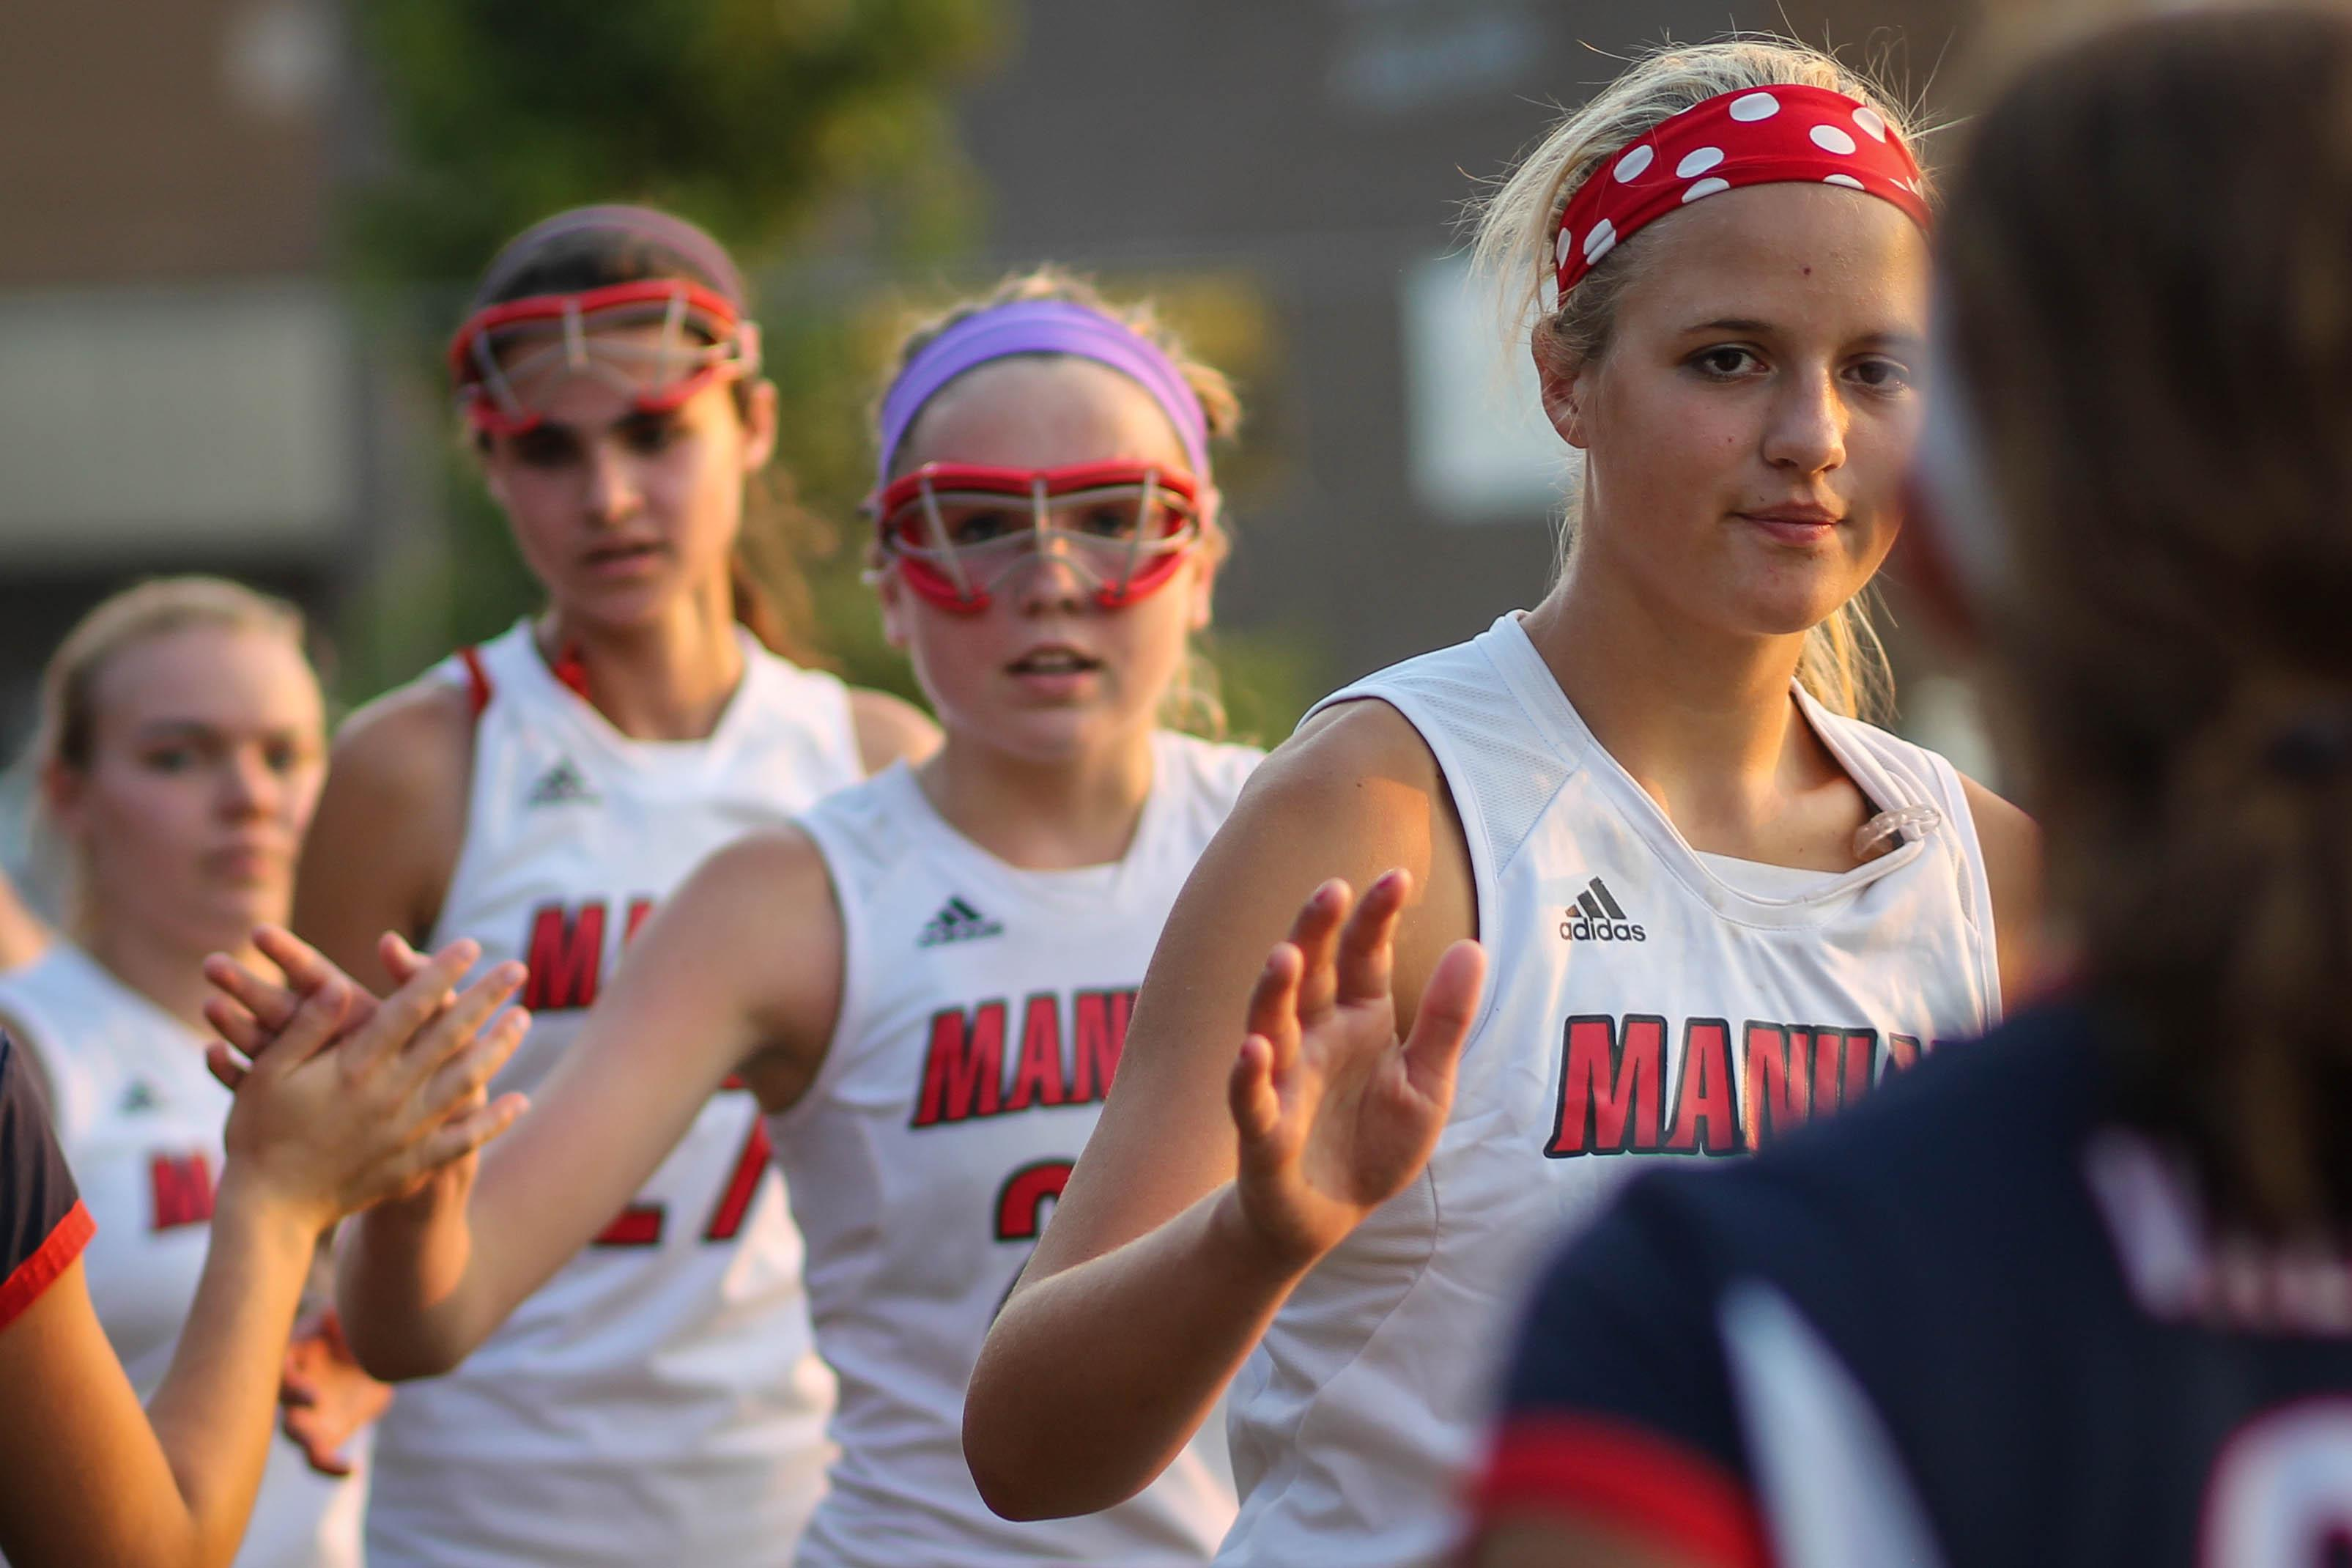 Katherine Stodgehill (11, 3rd from left) shakes hands with opponent following a game against Sacred Heart Academy.